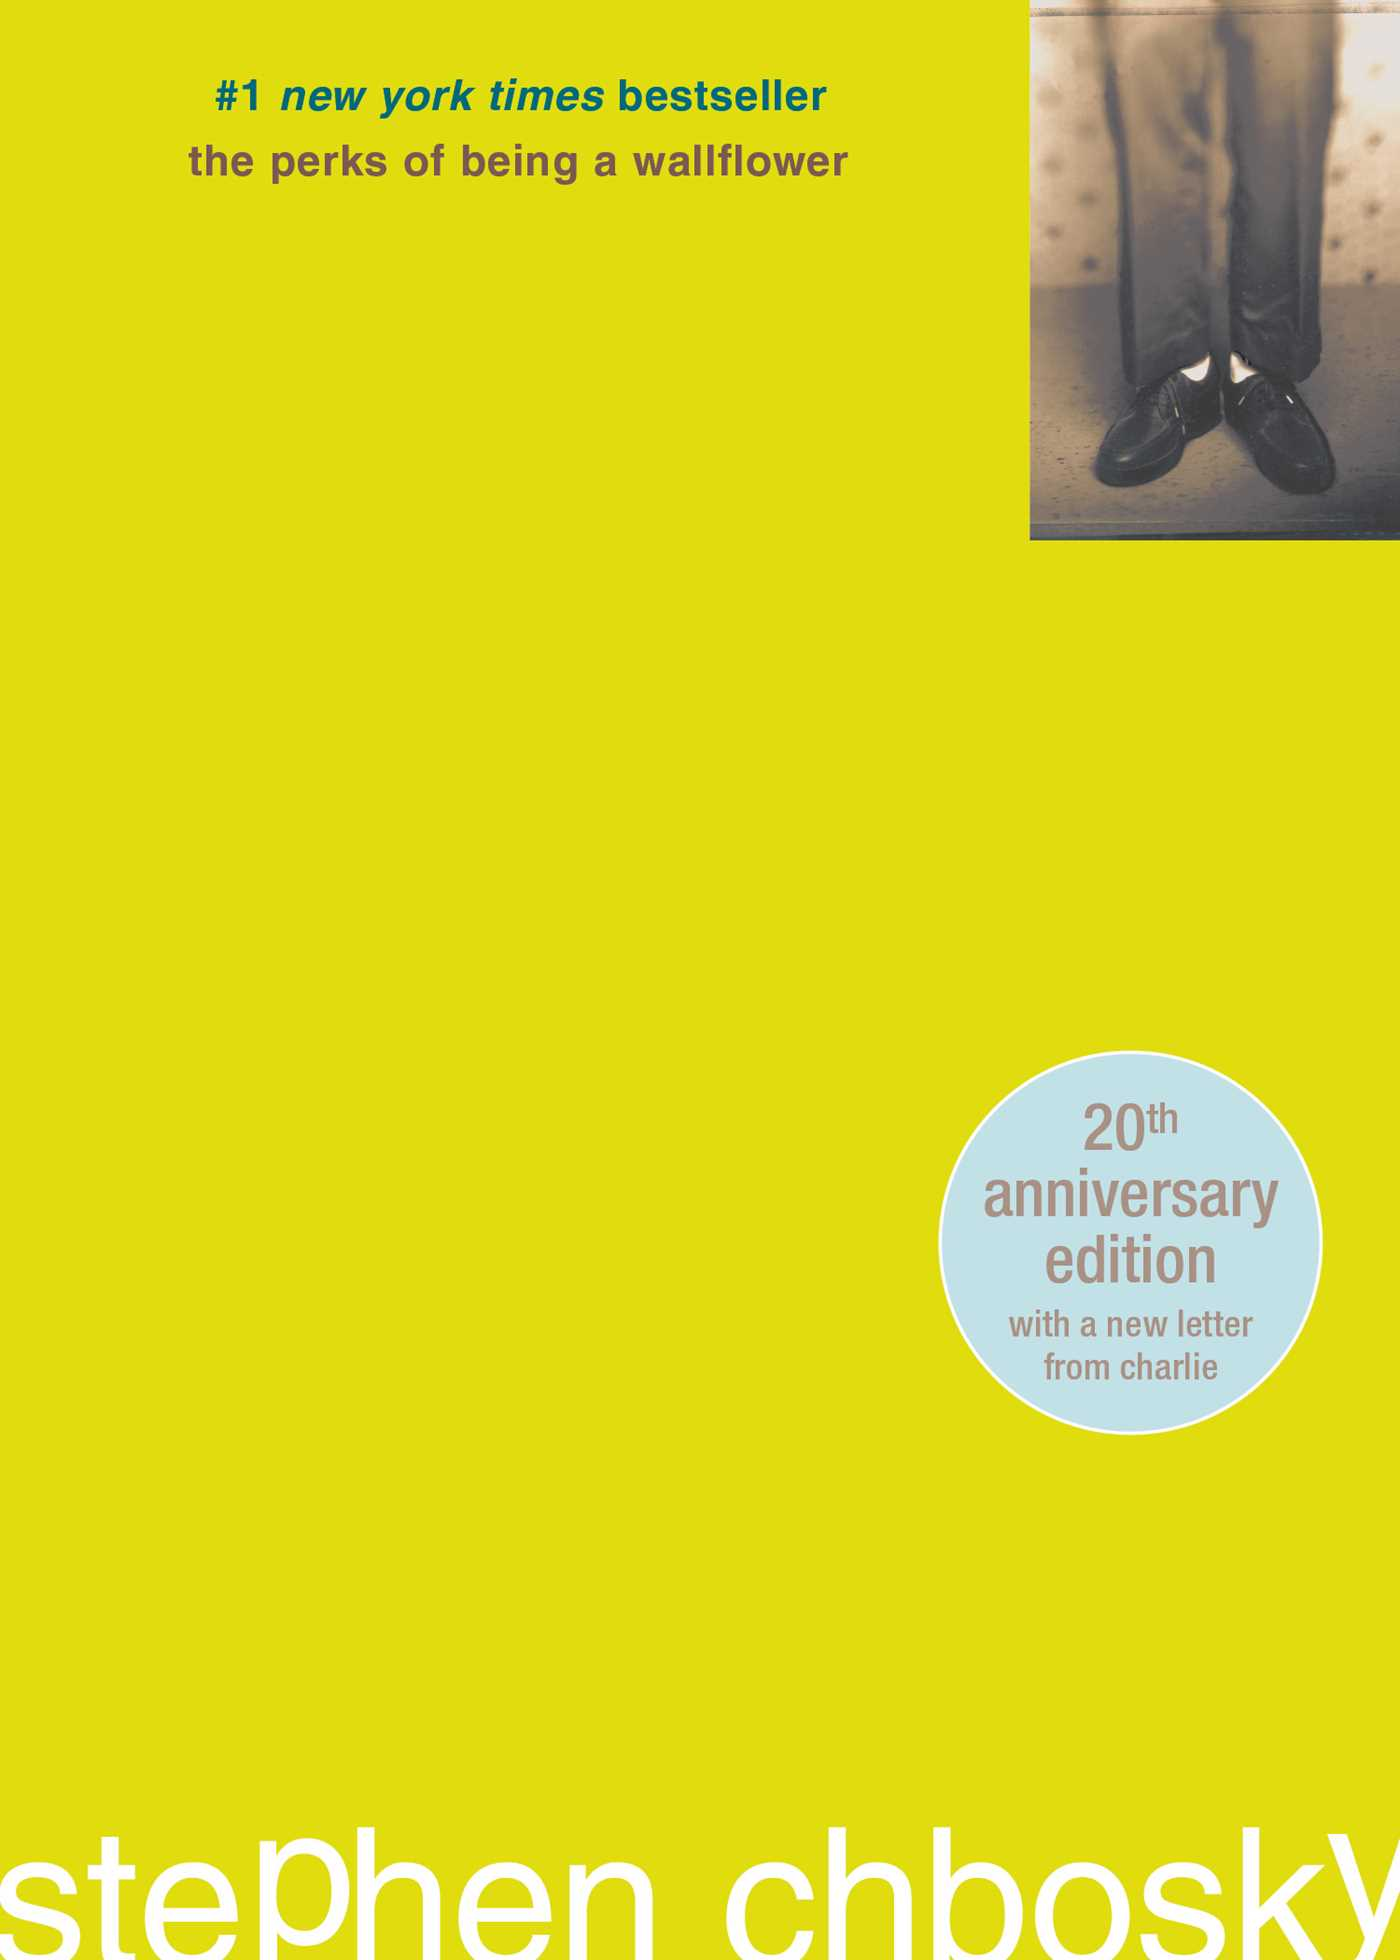 the perks of being a wallflower book pdf The Perks of Being a Wallflower | Book by Stephen Chbosky | Official ...